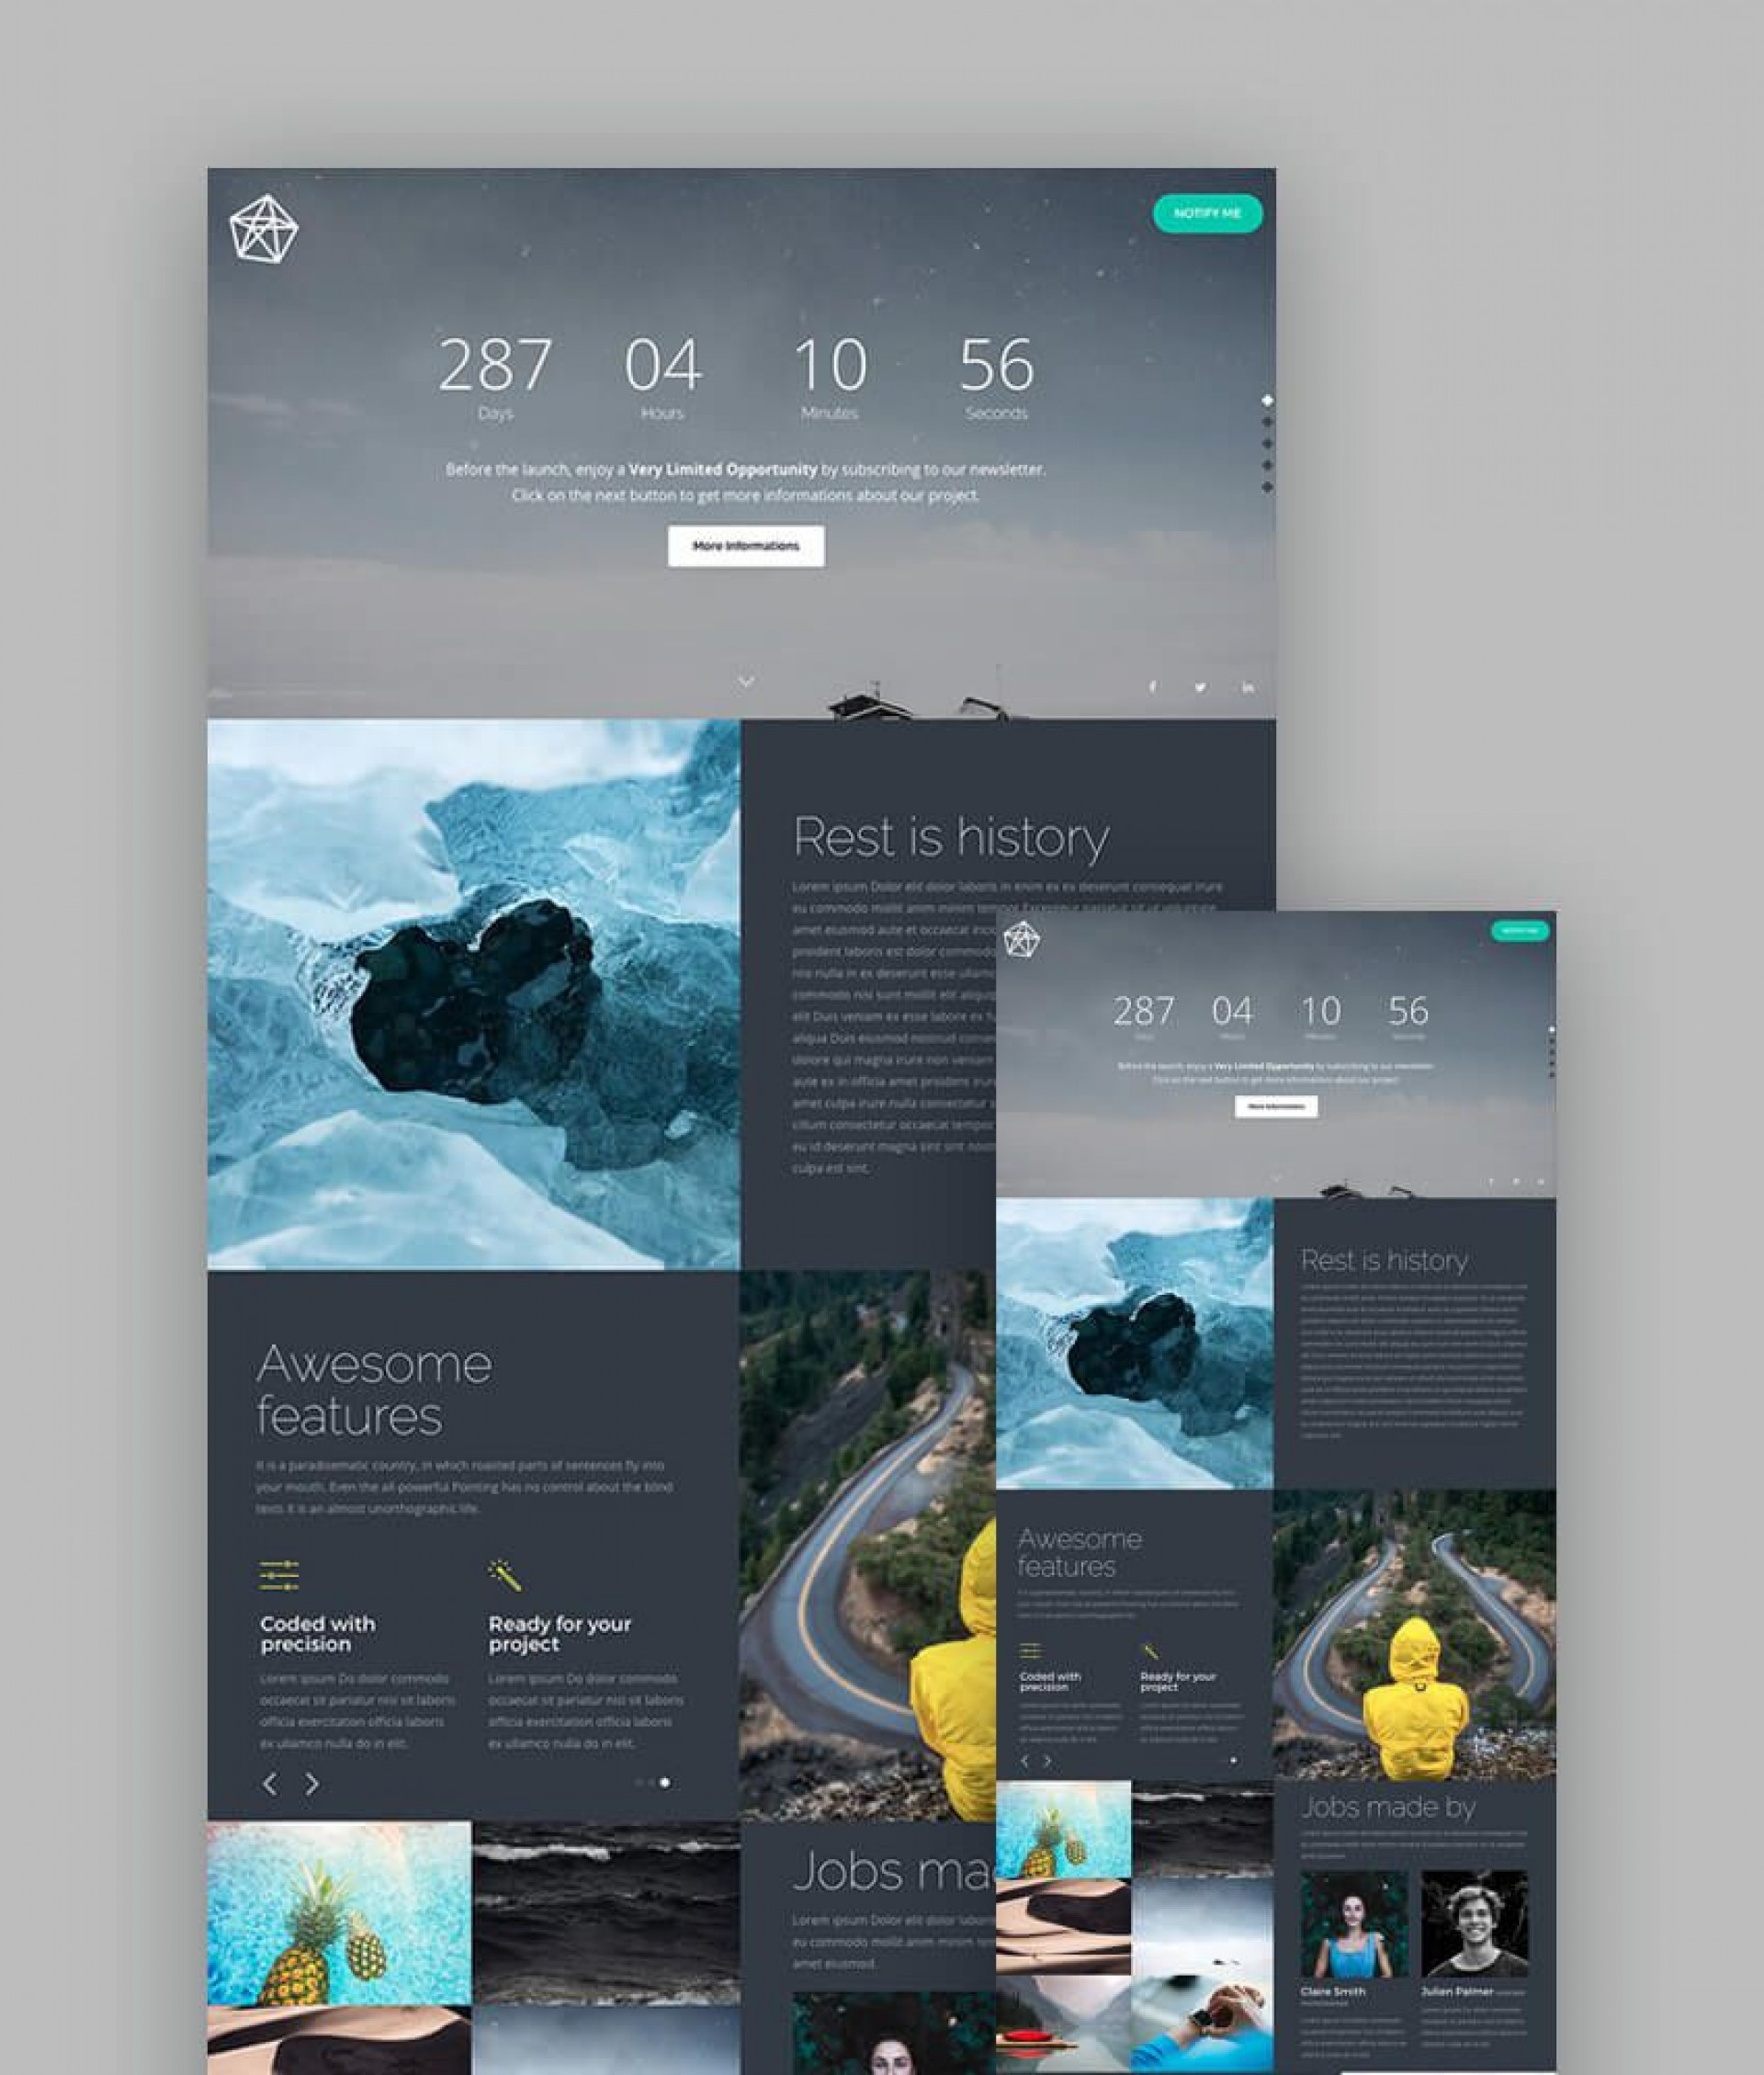 006 Frightening Responsive Landing Page Template High Definition  Templates Html5 Free Download Wordpres Html1920